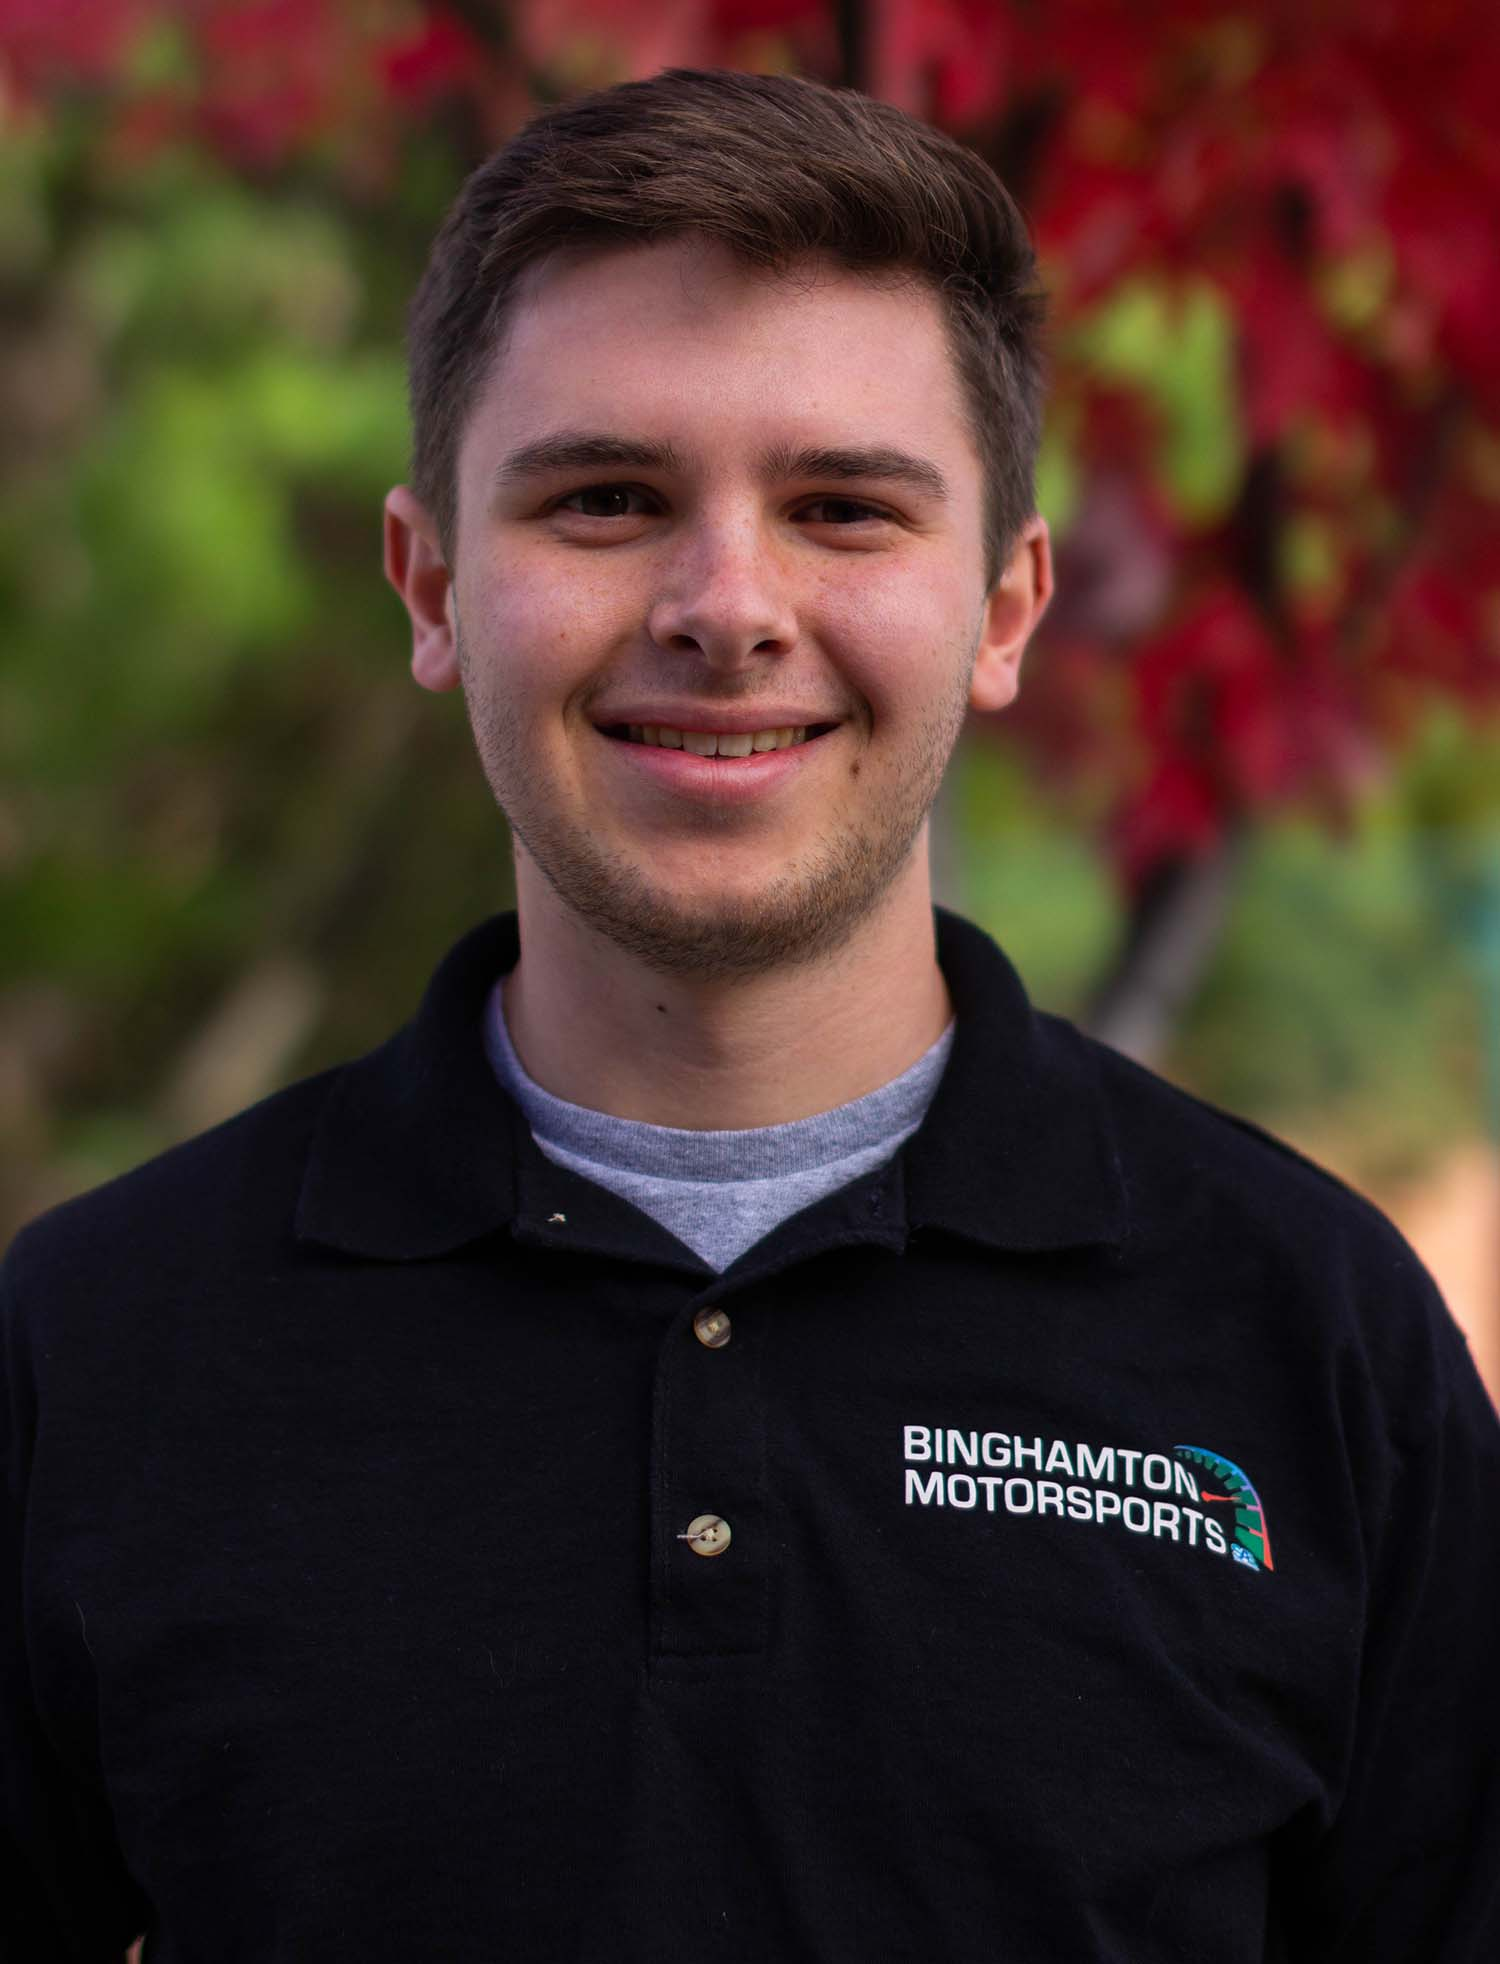 Jacob Honsinger '19 was the project manager for the Binghamton Motorsports Formula car.